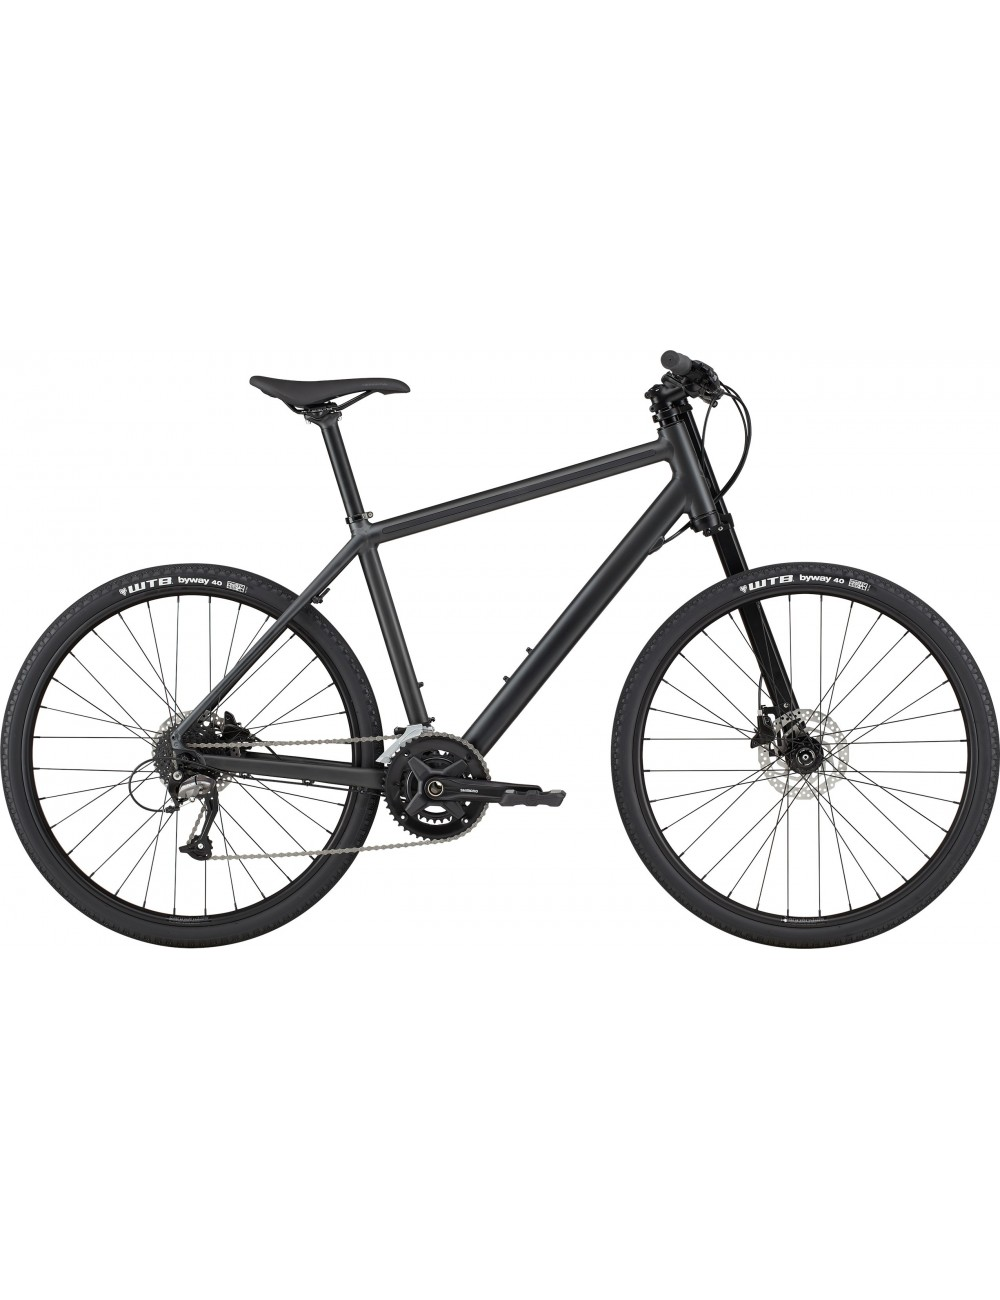 CANNONDALE BAD BOY 2 PRETO 2021